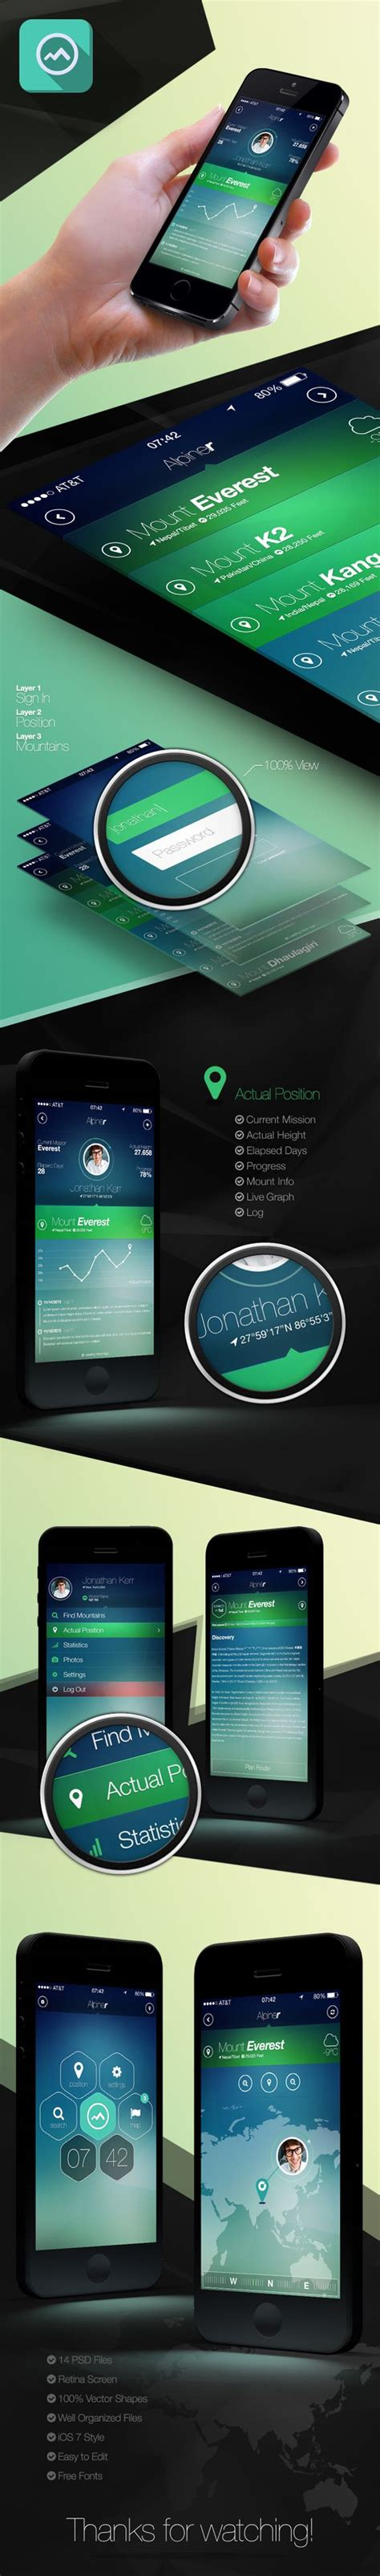 iphone layout design alpiner iphone 5 retina app design if any of you are